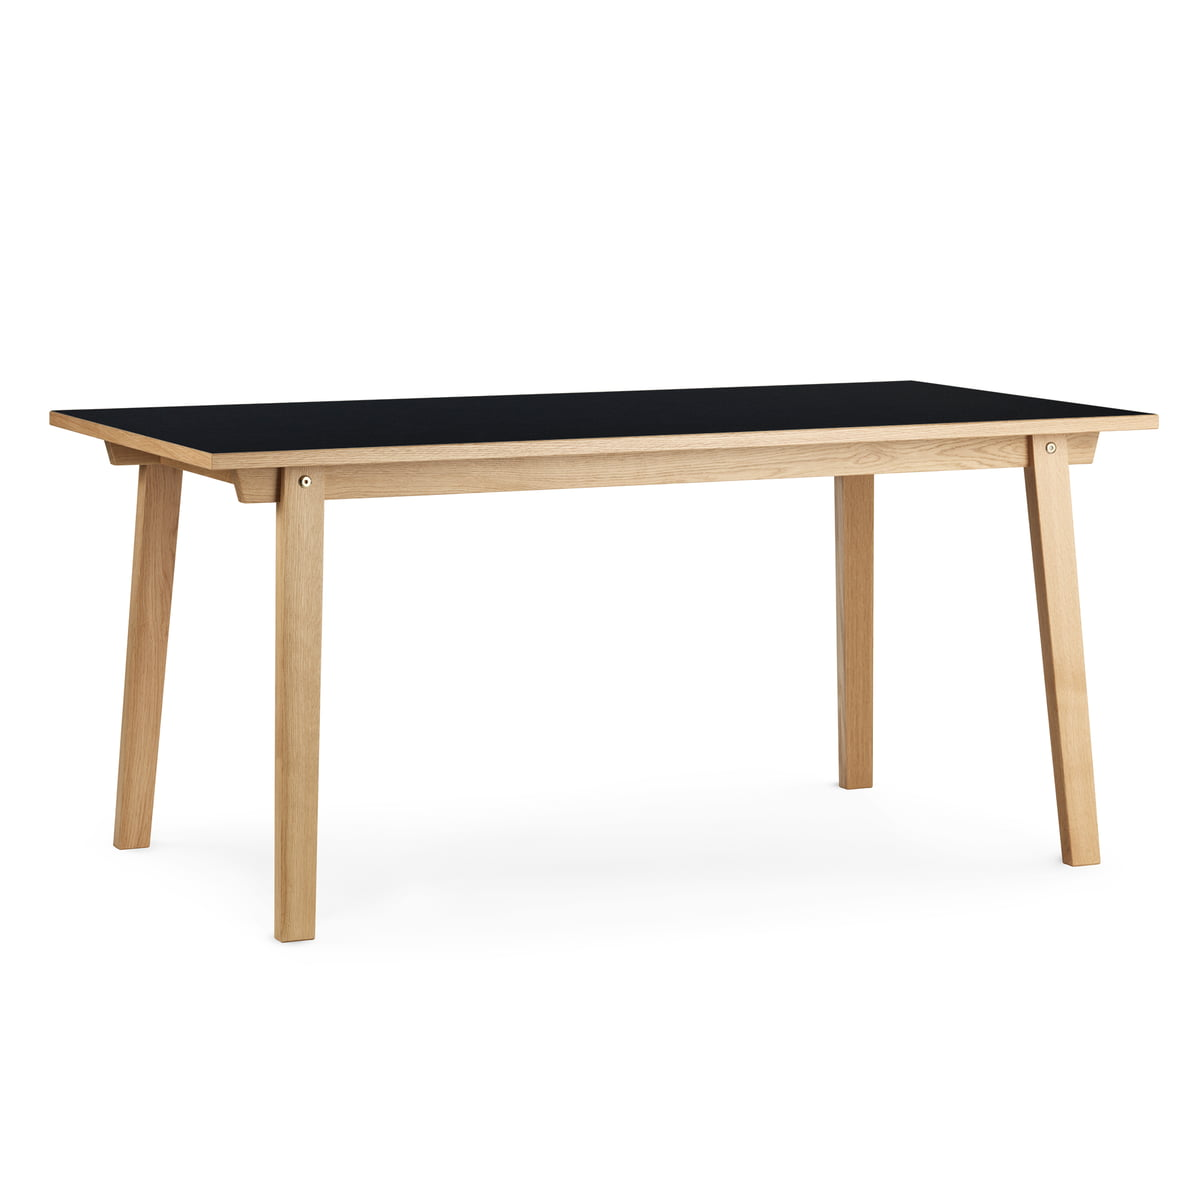 Slice Bar High Table 200 X 90 X 103 Cm By Normann Copenhagen In Black